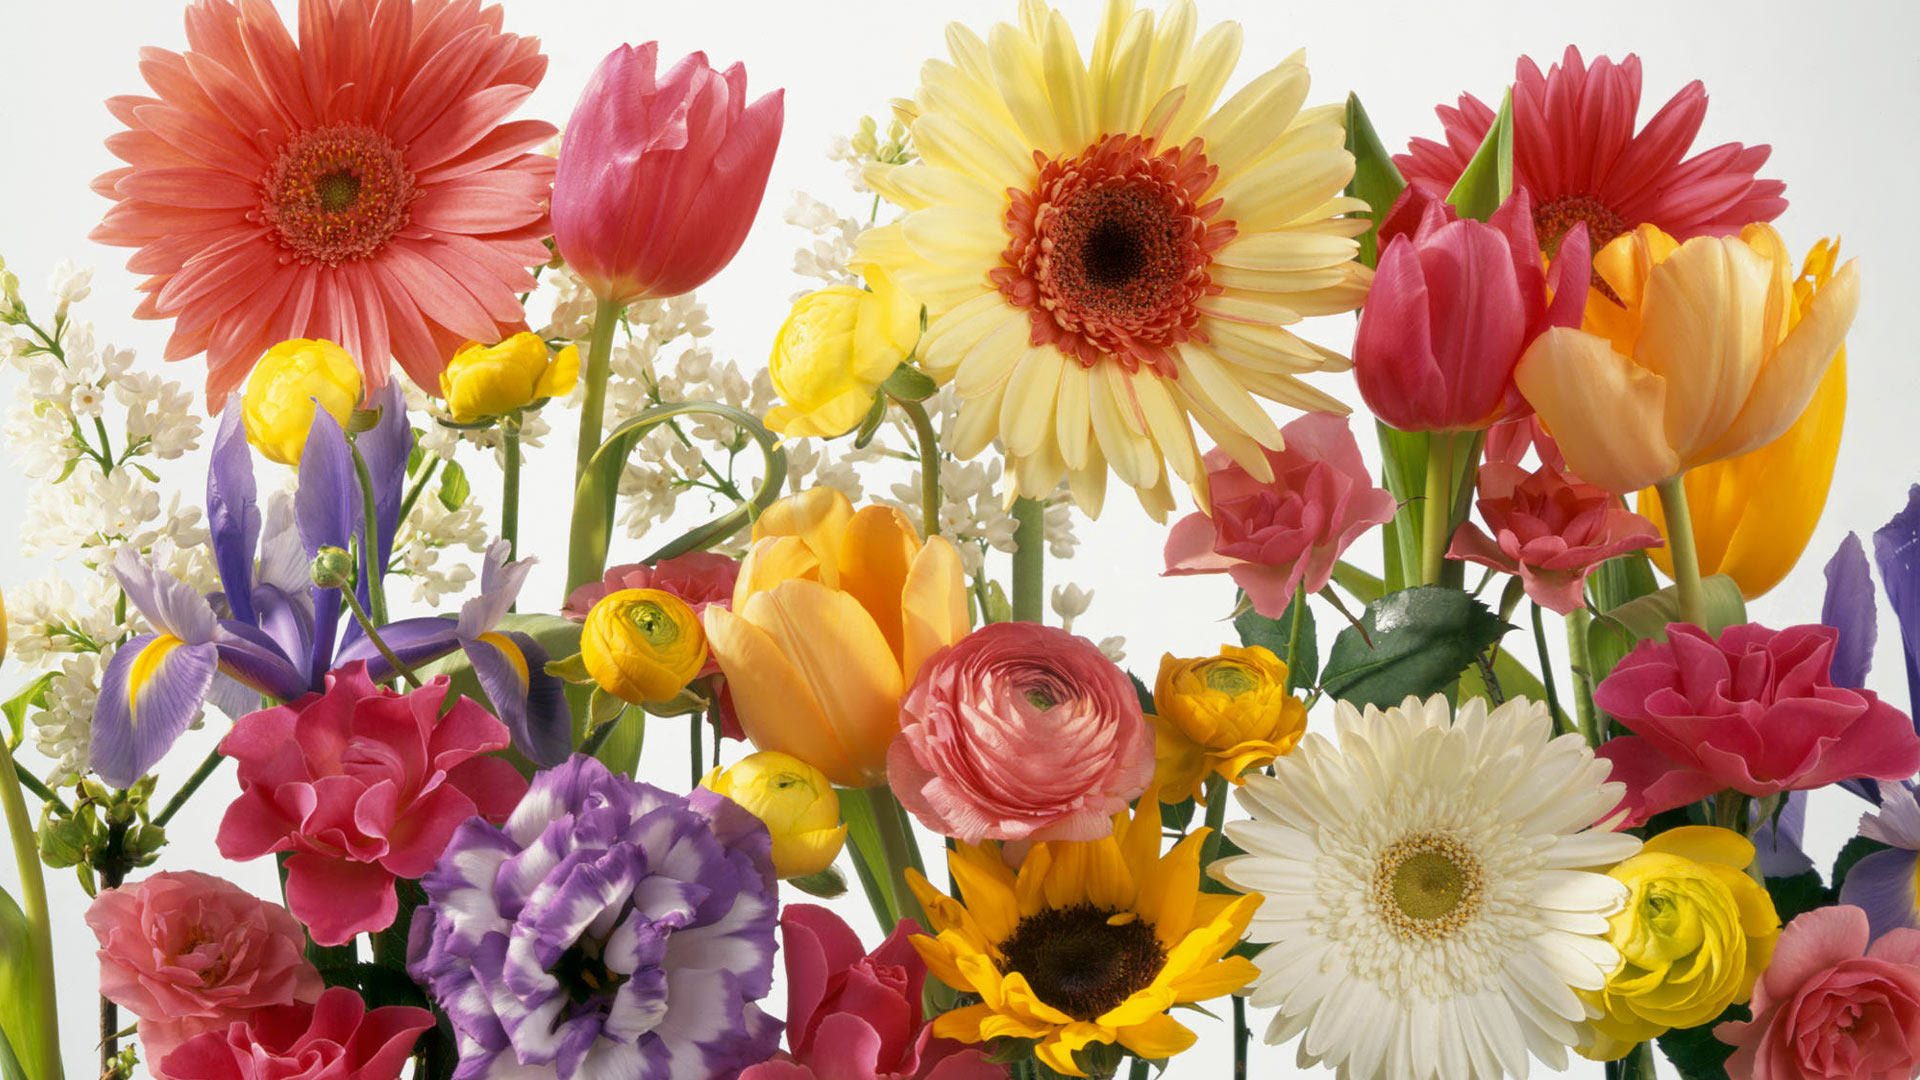 free flowers spring wallpapers hd desktop background free flowers